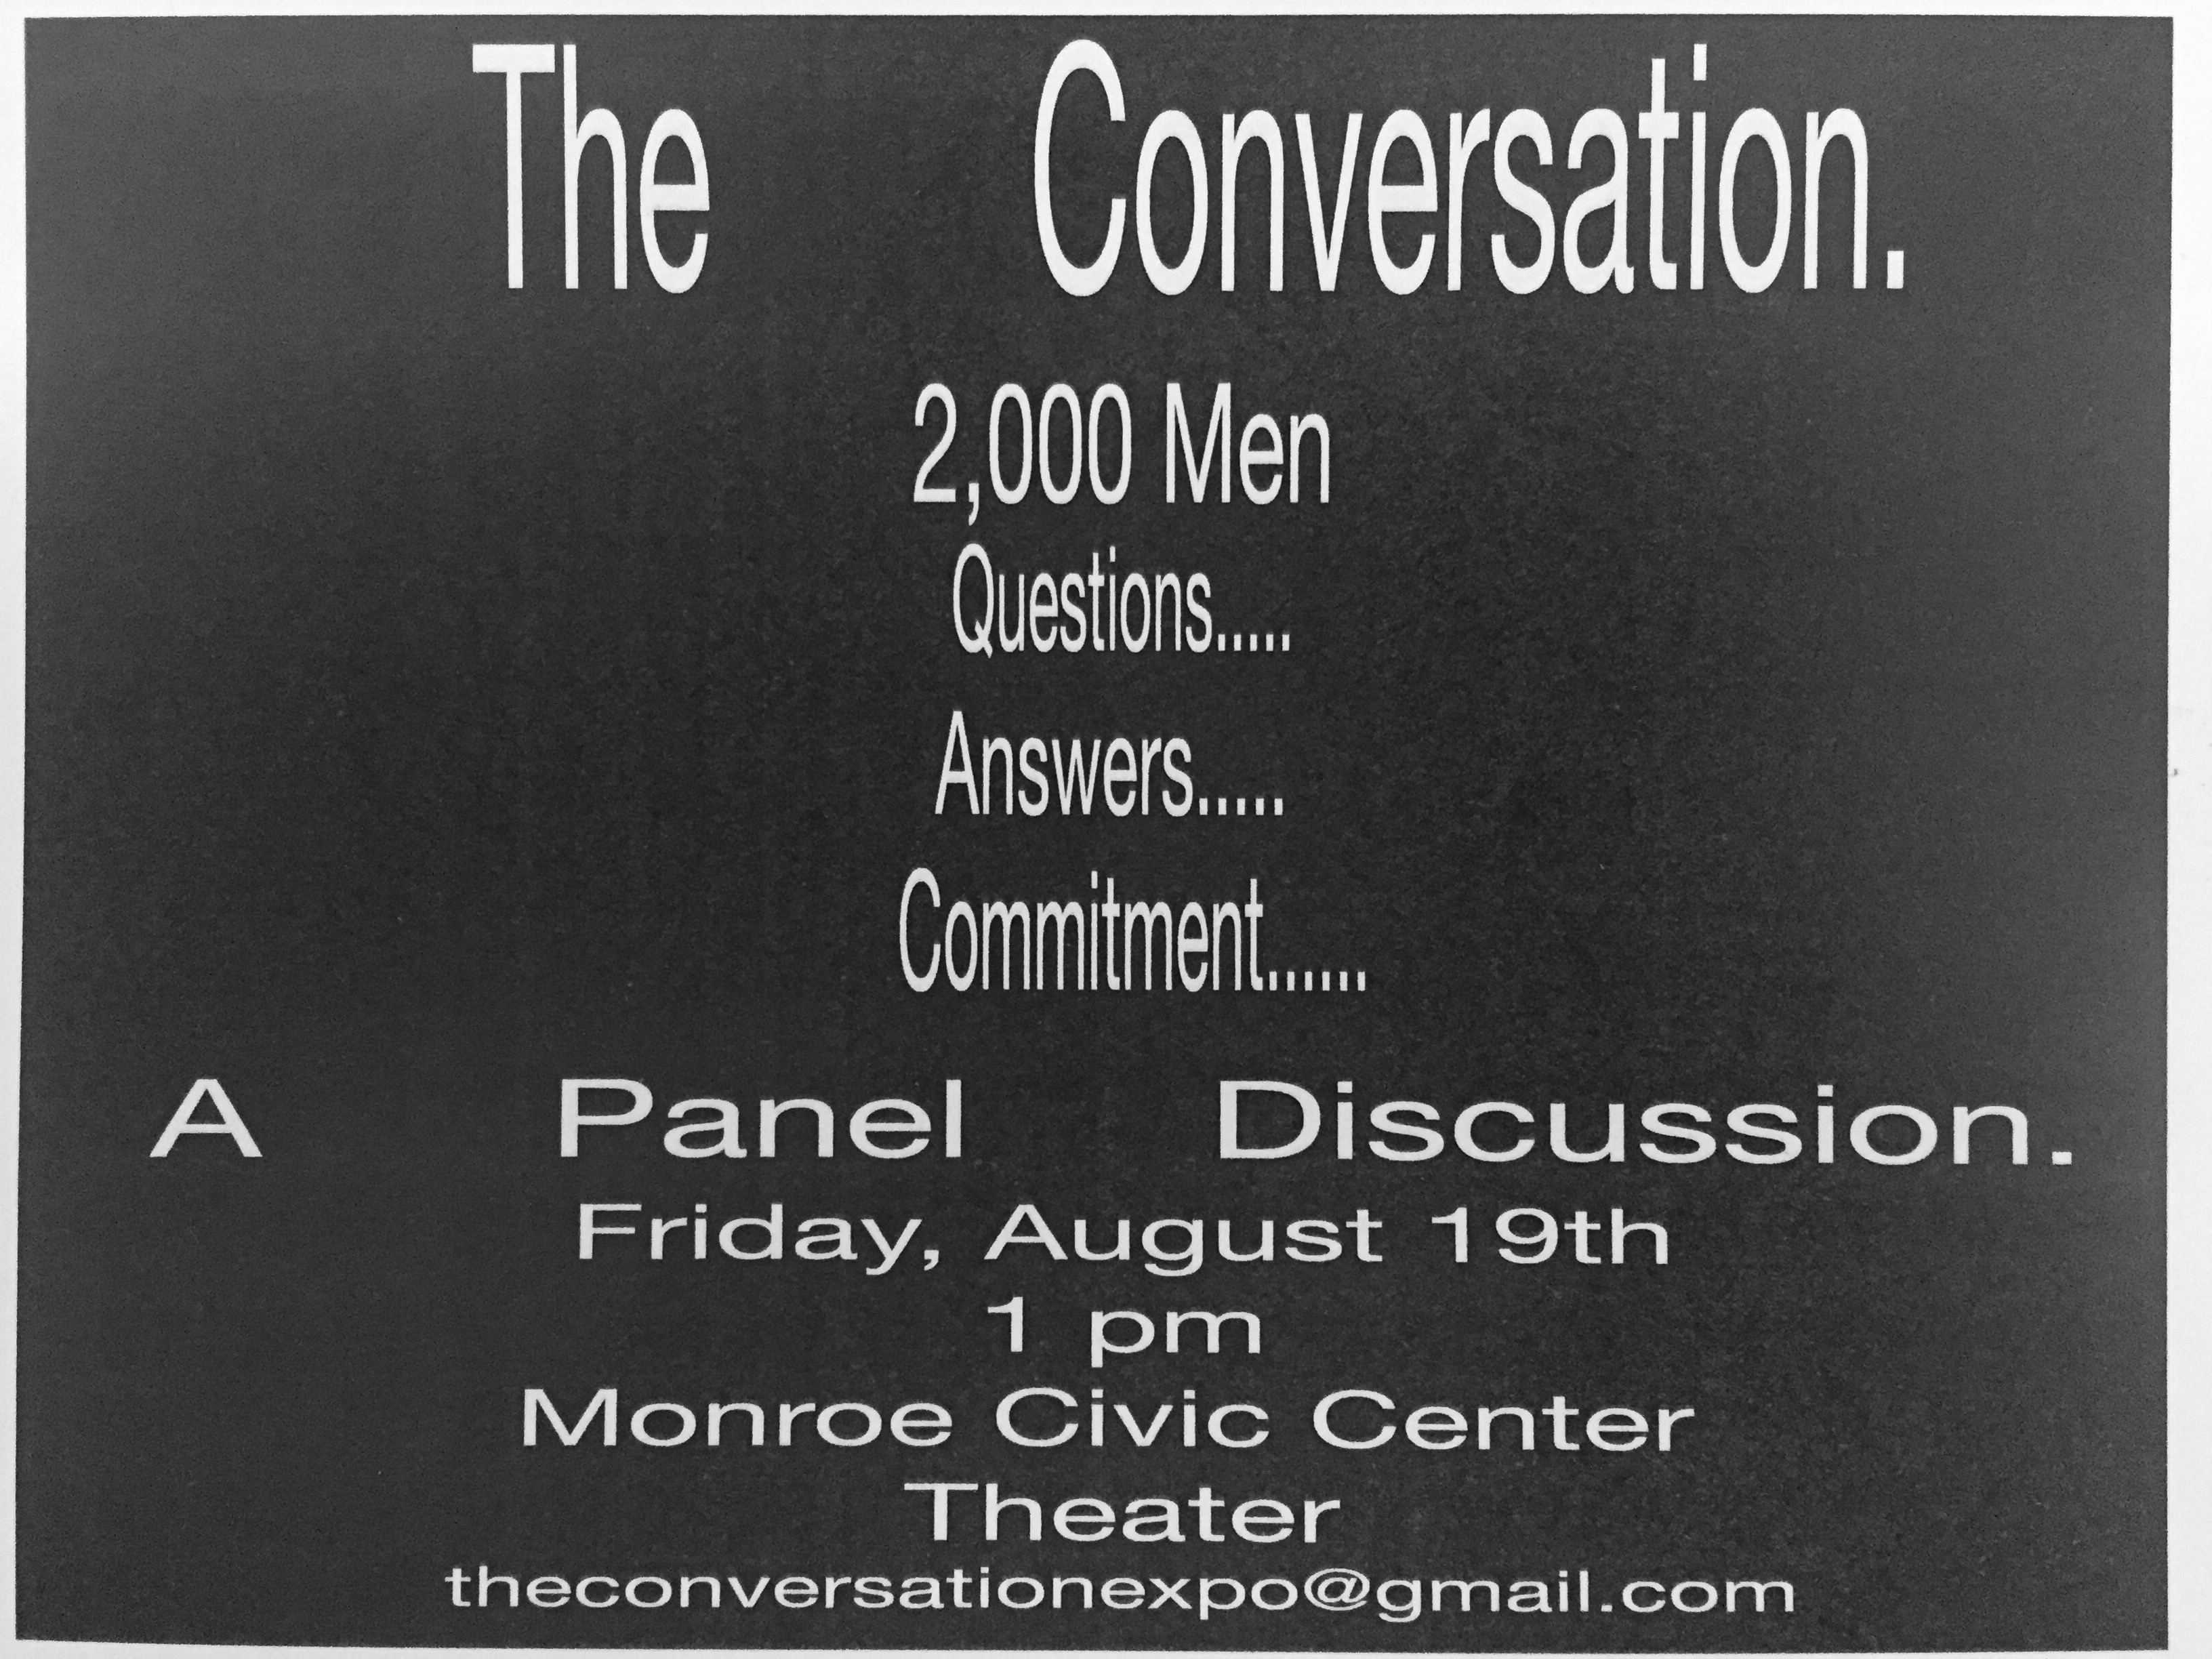 The Conversation: A Panel Discussion